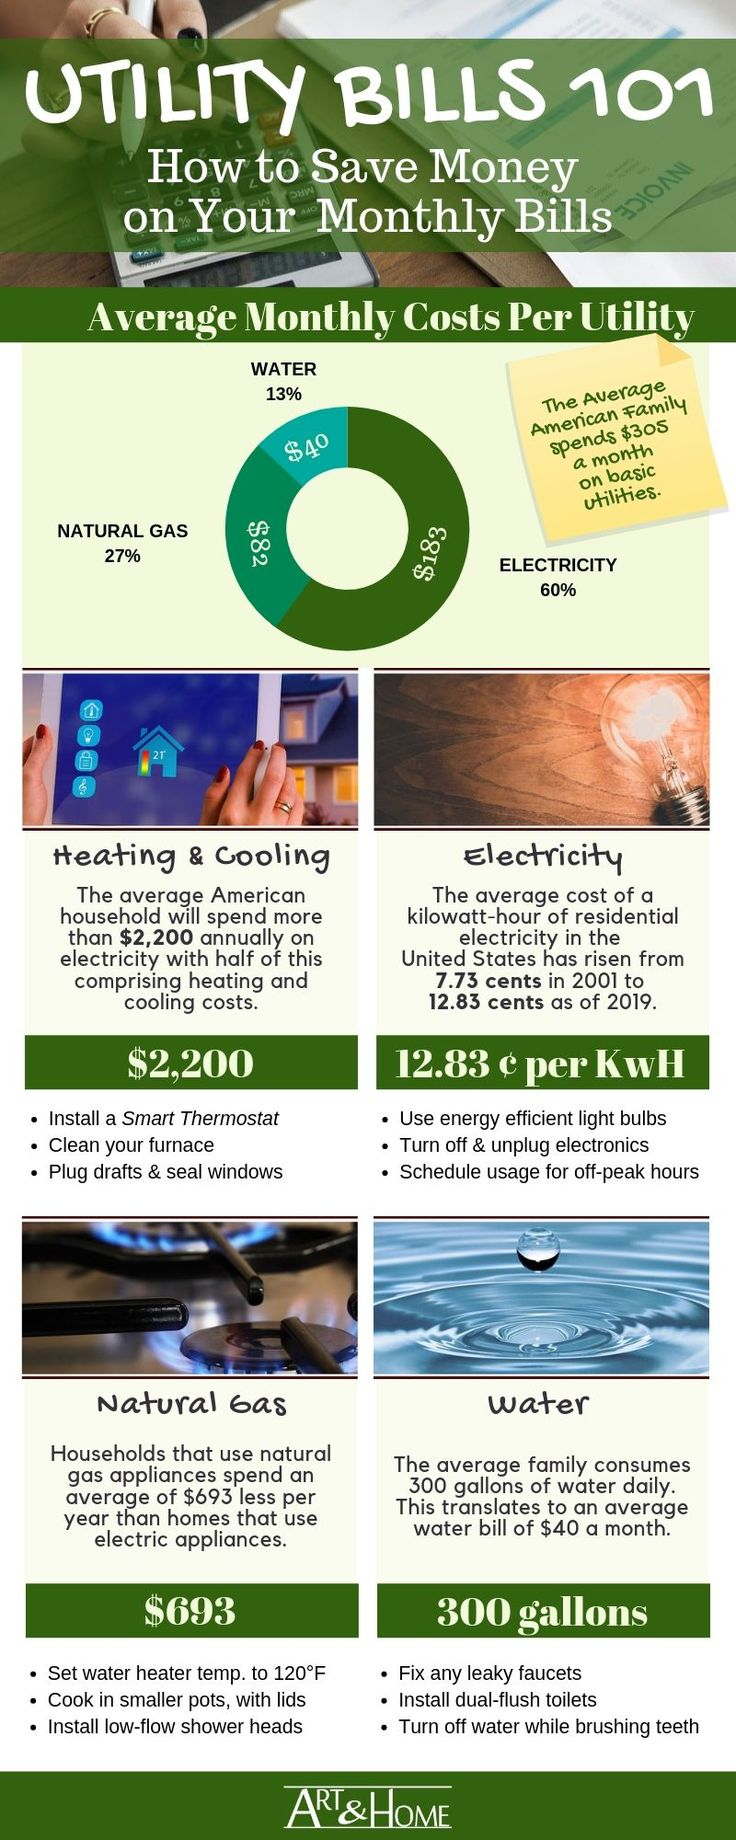 How to save money on your monthly utility bills art